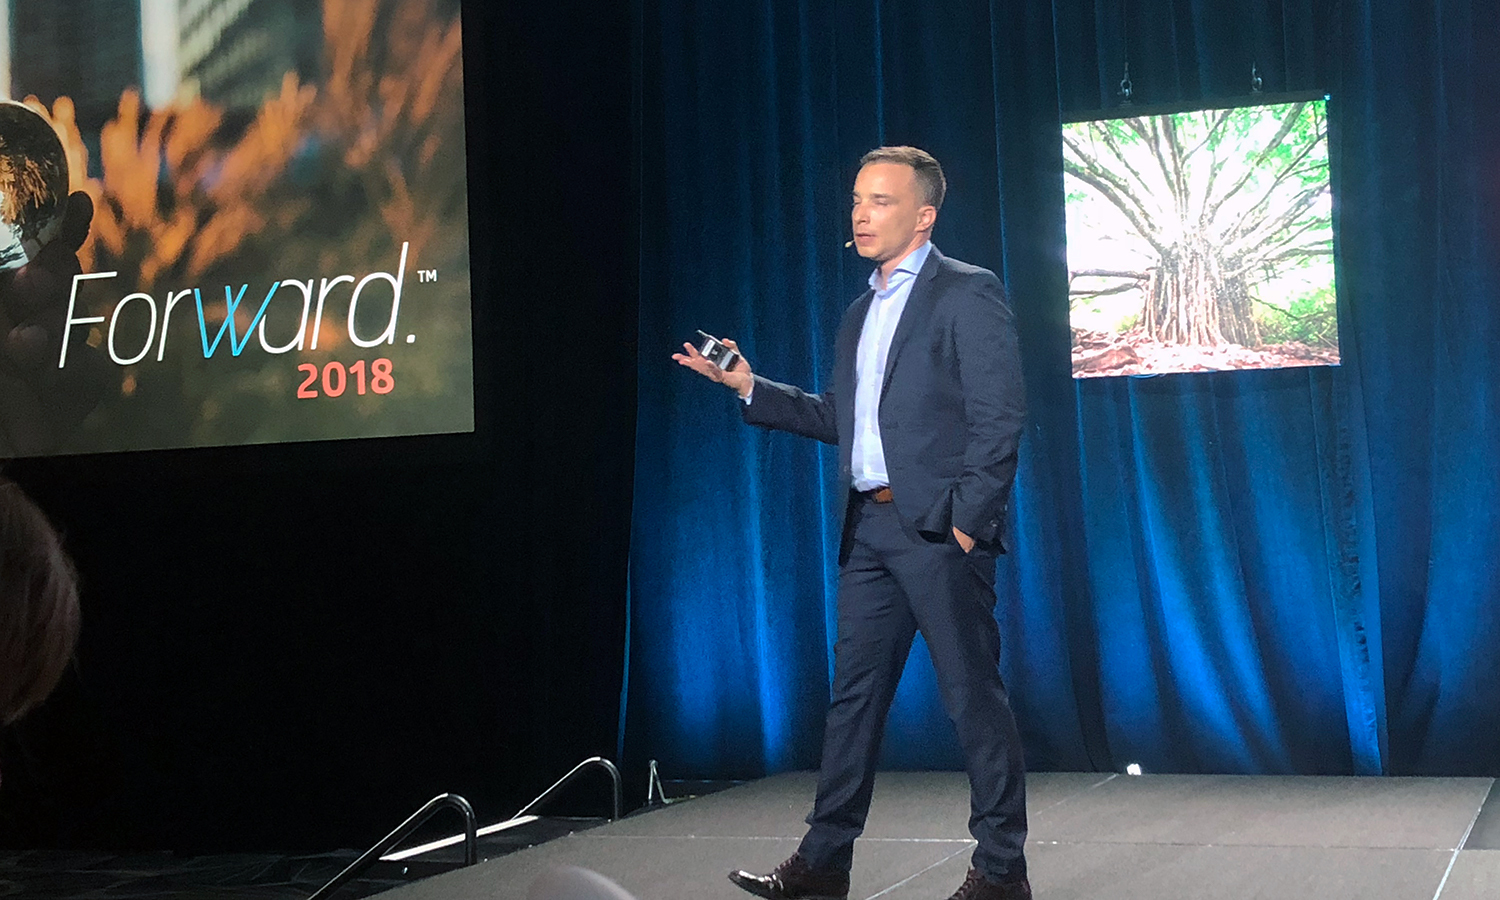 Tom Gerace delivers the opening keynote at Forward 2018